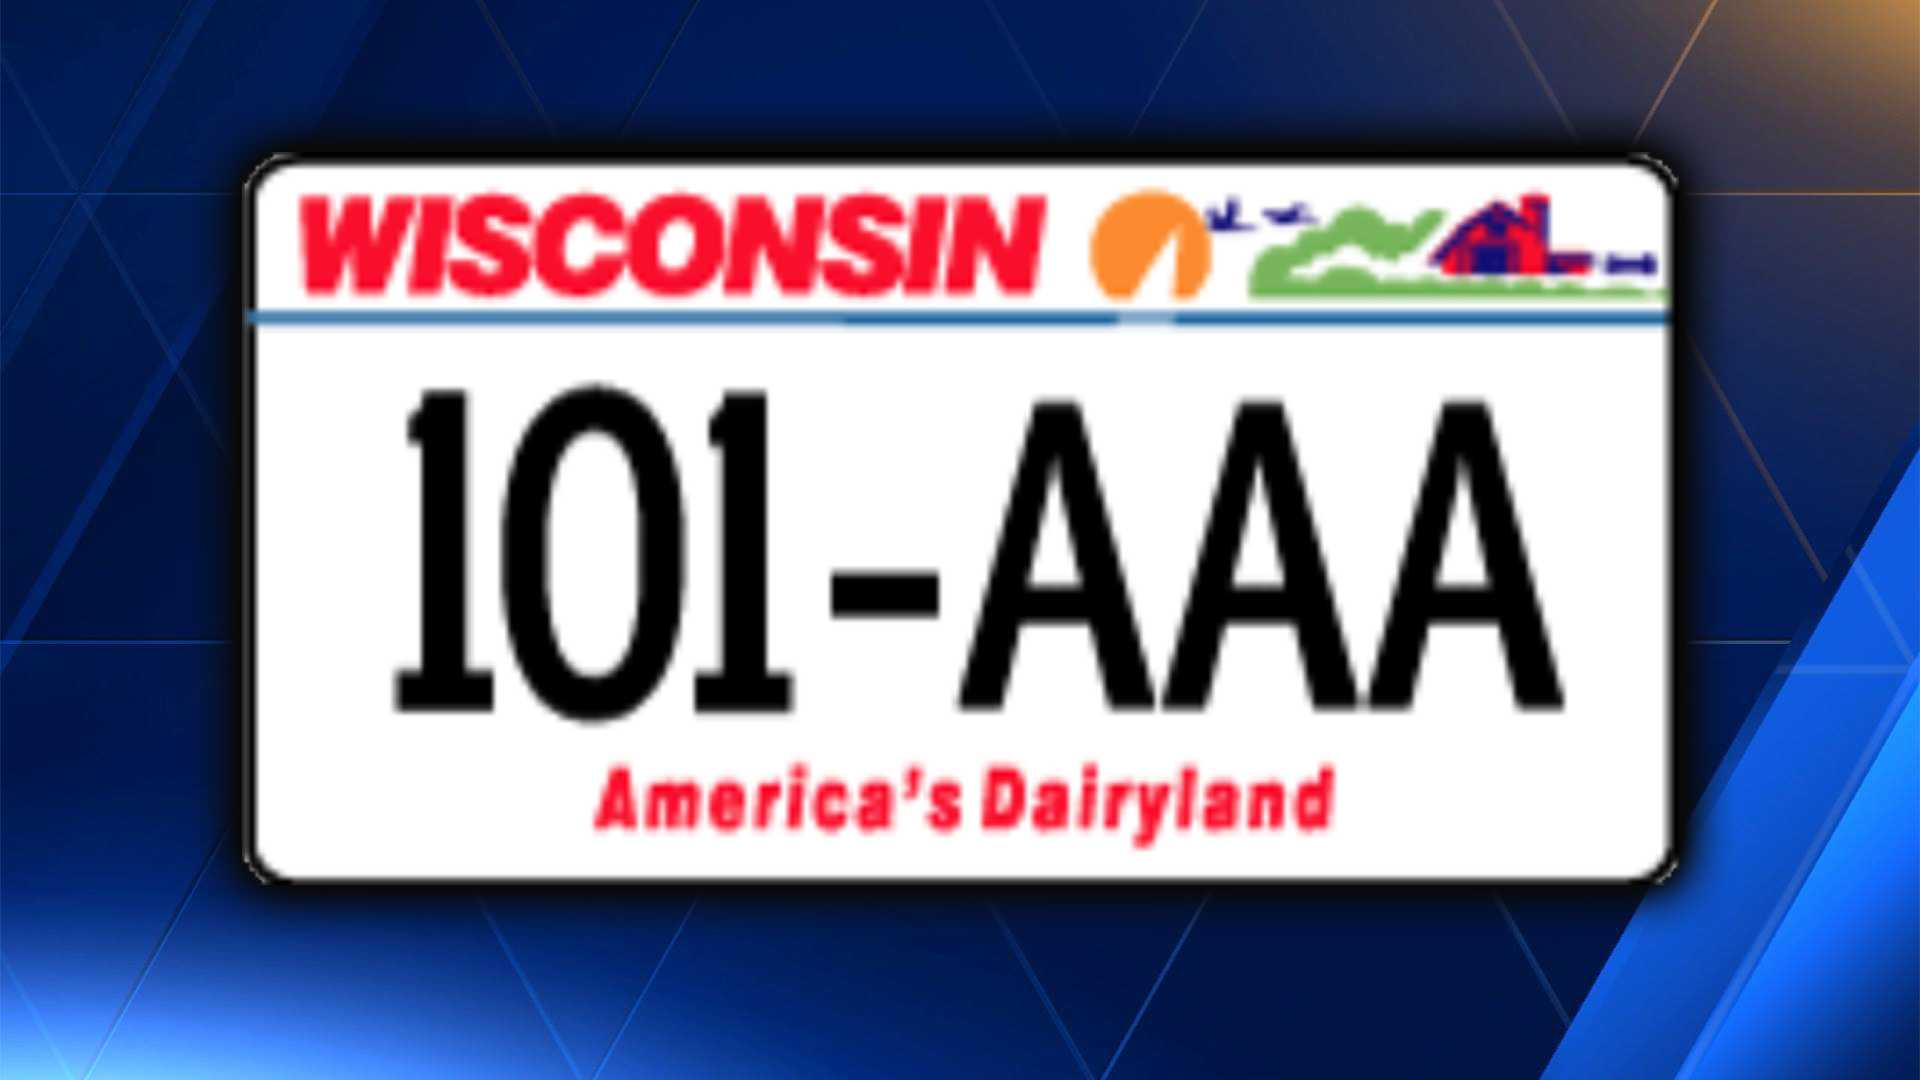 State leader wants to ditch 'America's Dairyland' slogan